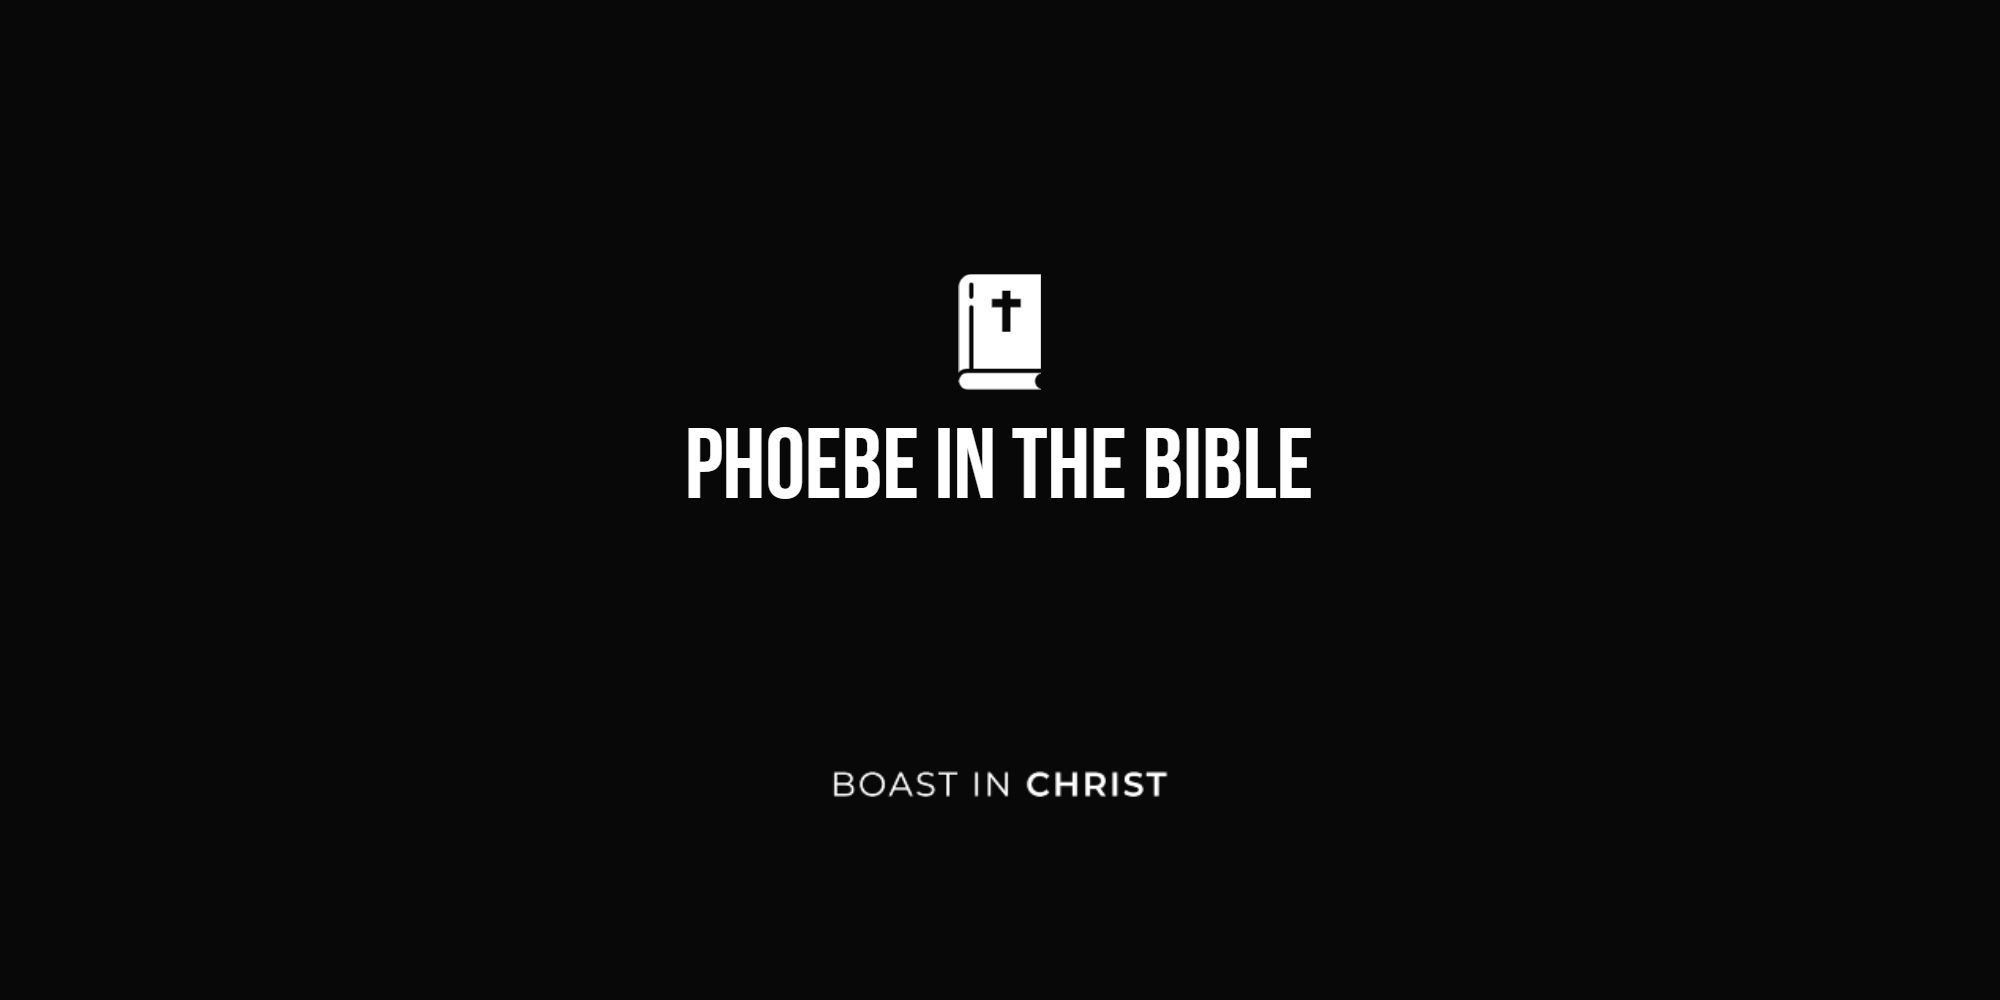 Phoebe In The Bible